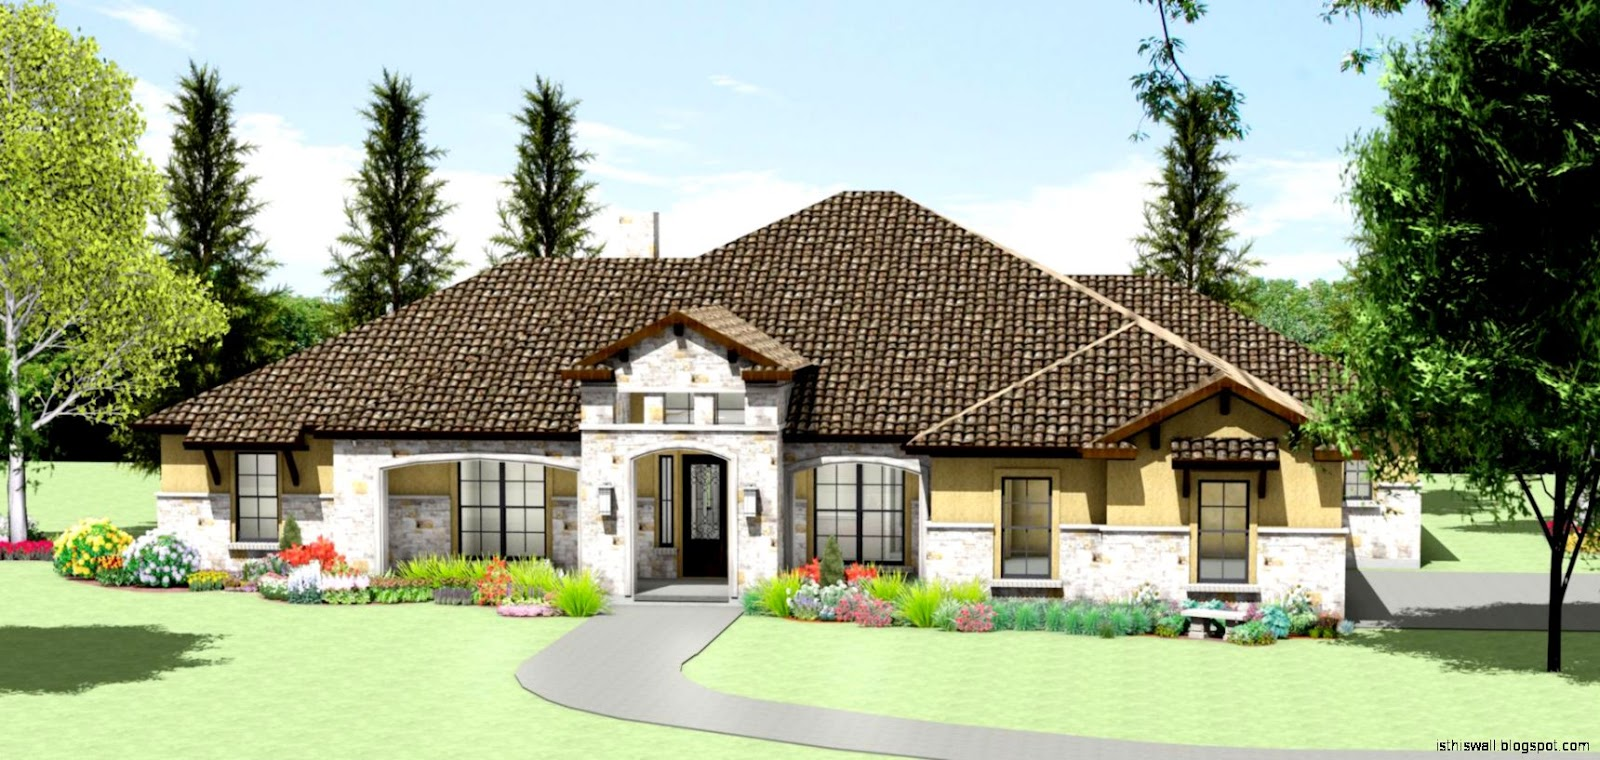 Home design texas hill country this wallpapers for Texas country house plans